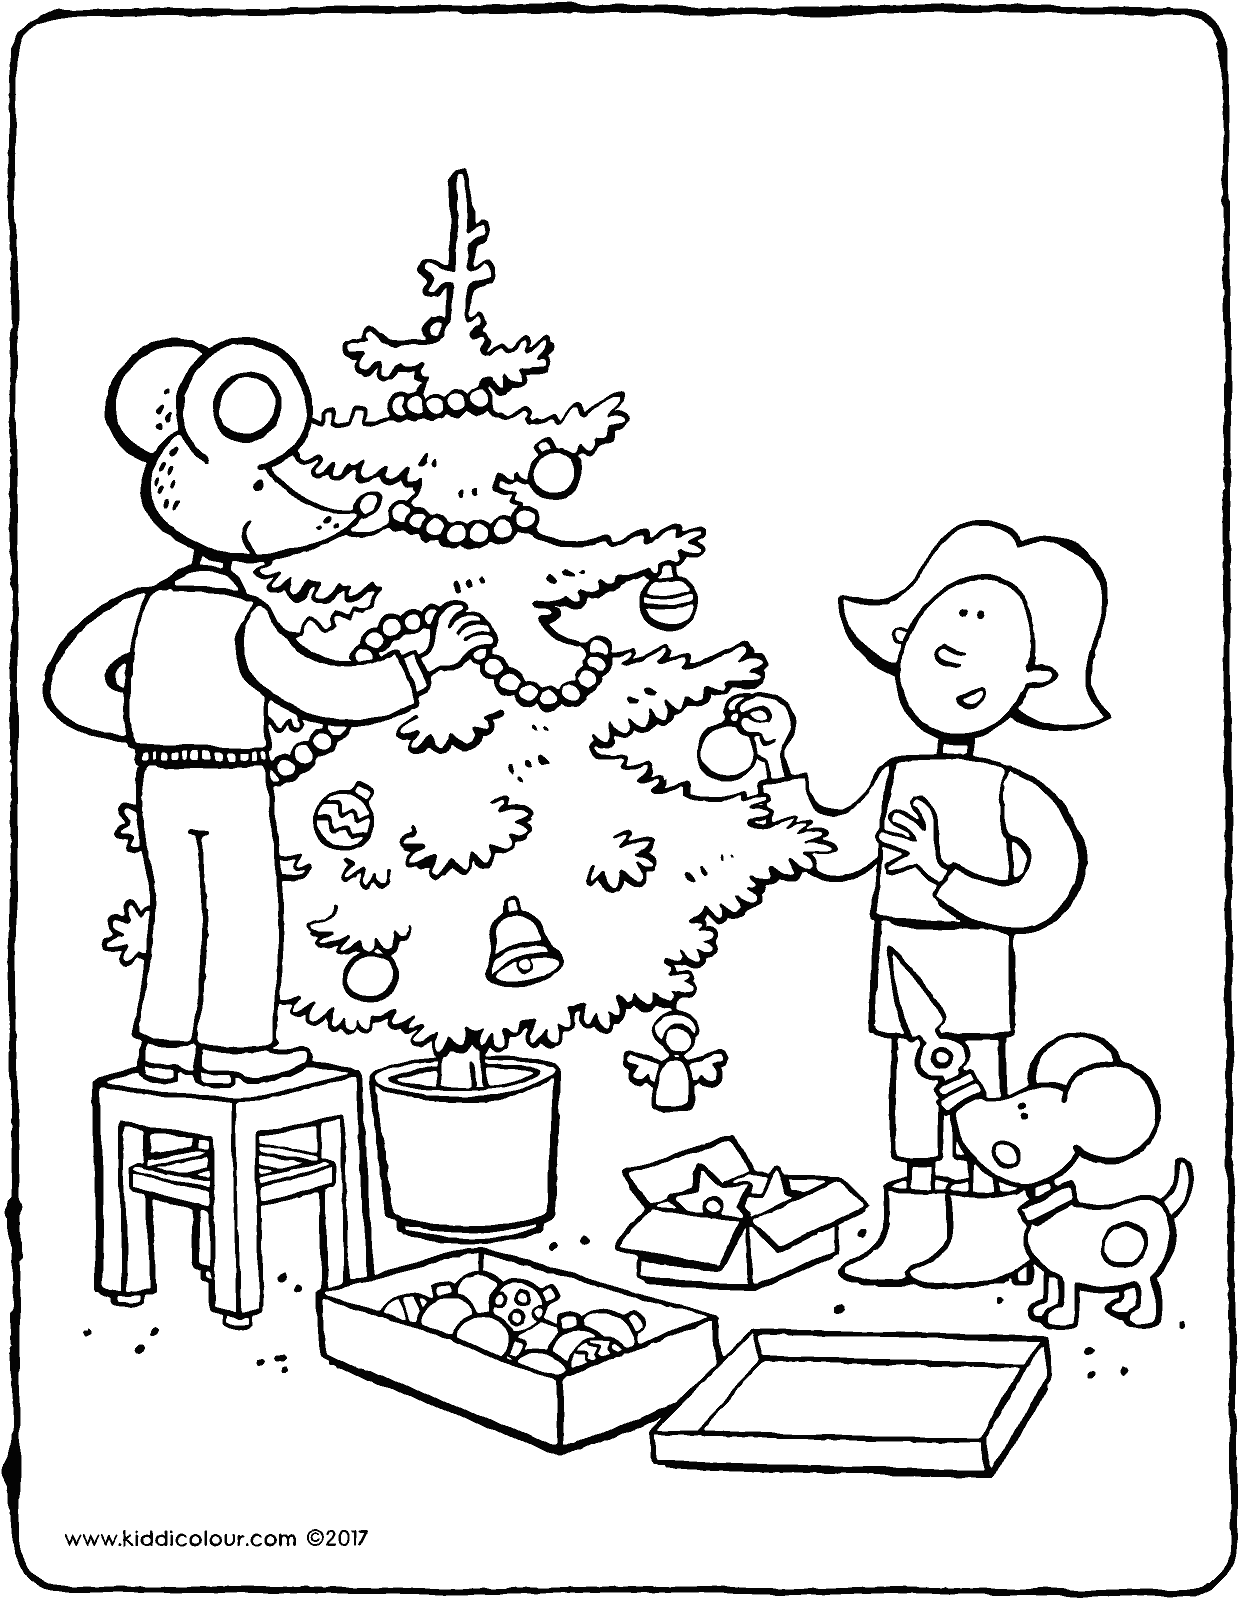 Emma and Thomas decorate the Christmas tree colouring page page drawing picture 01V